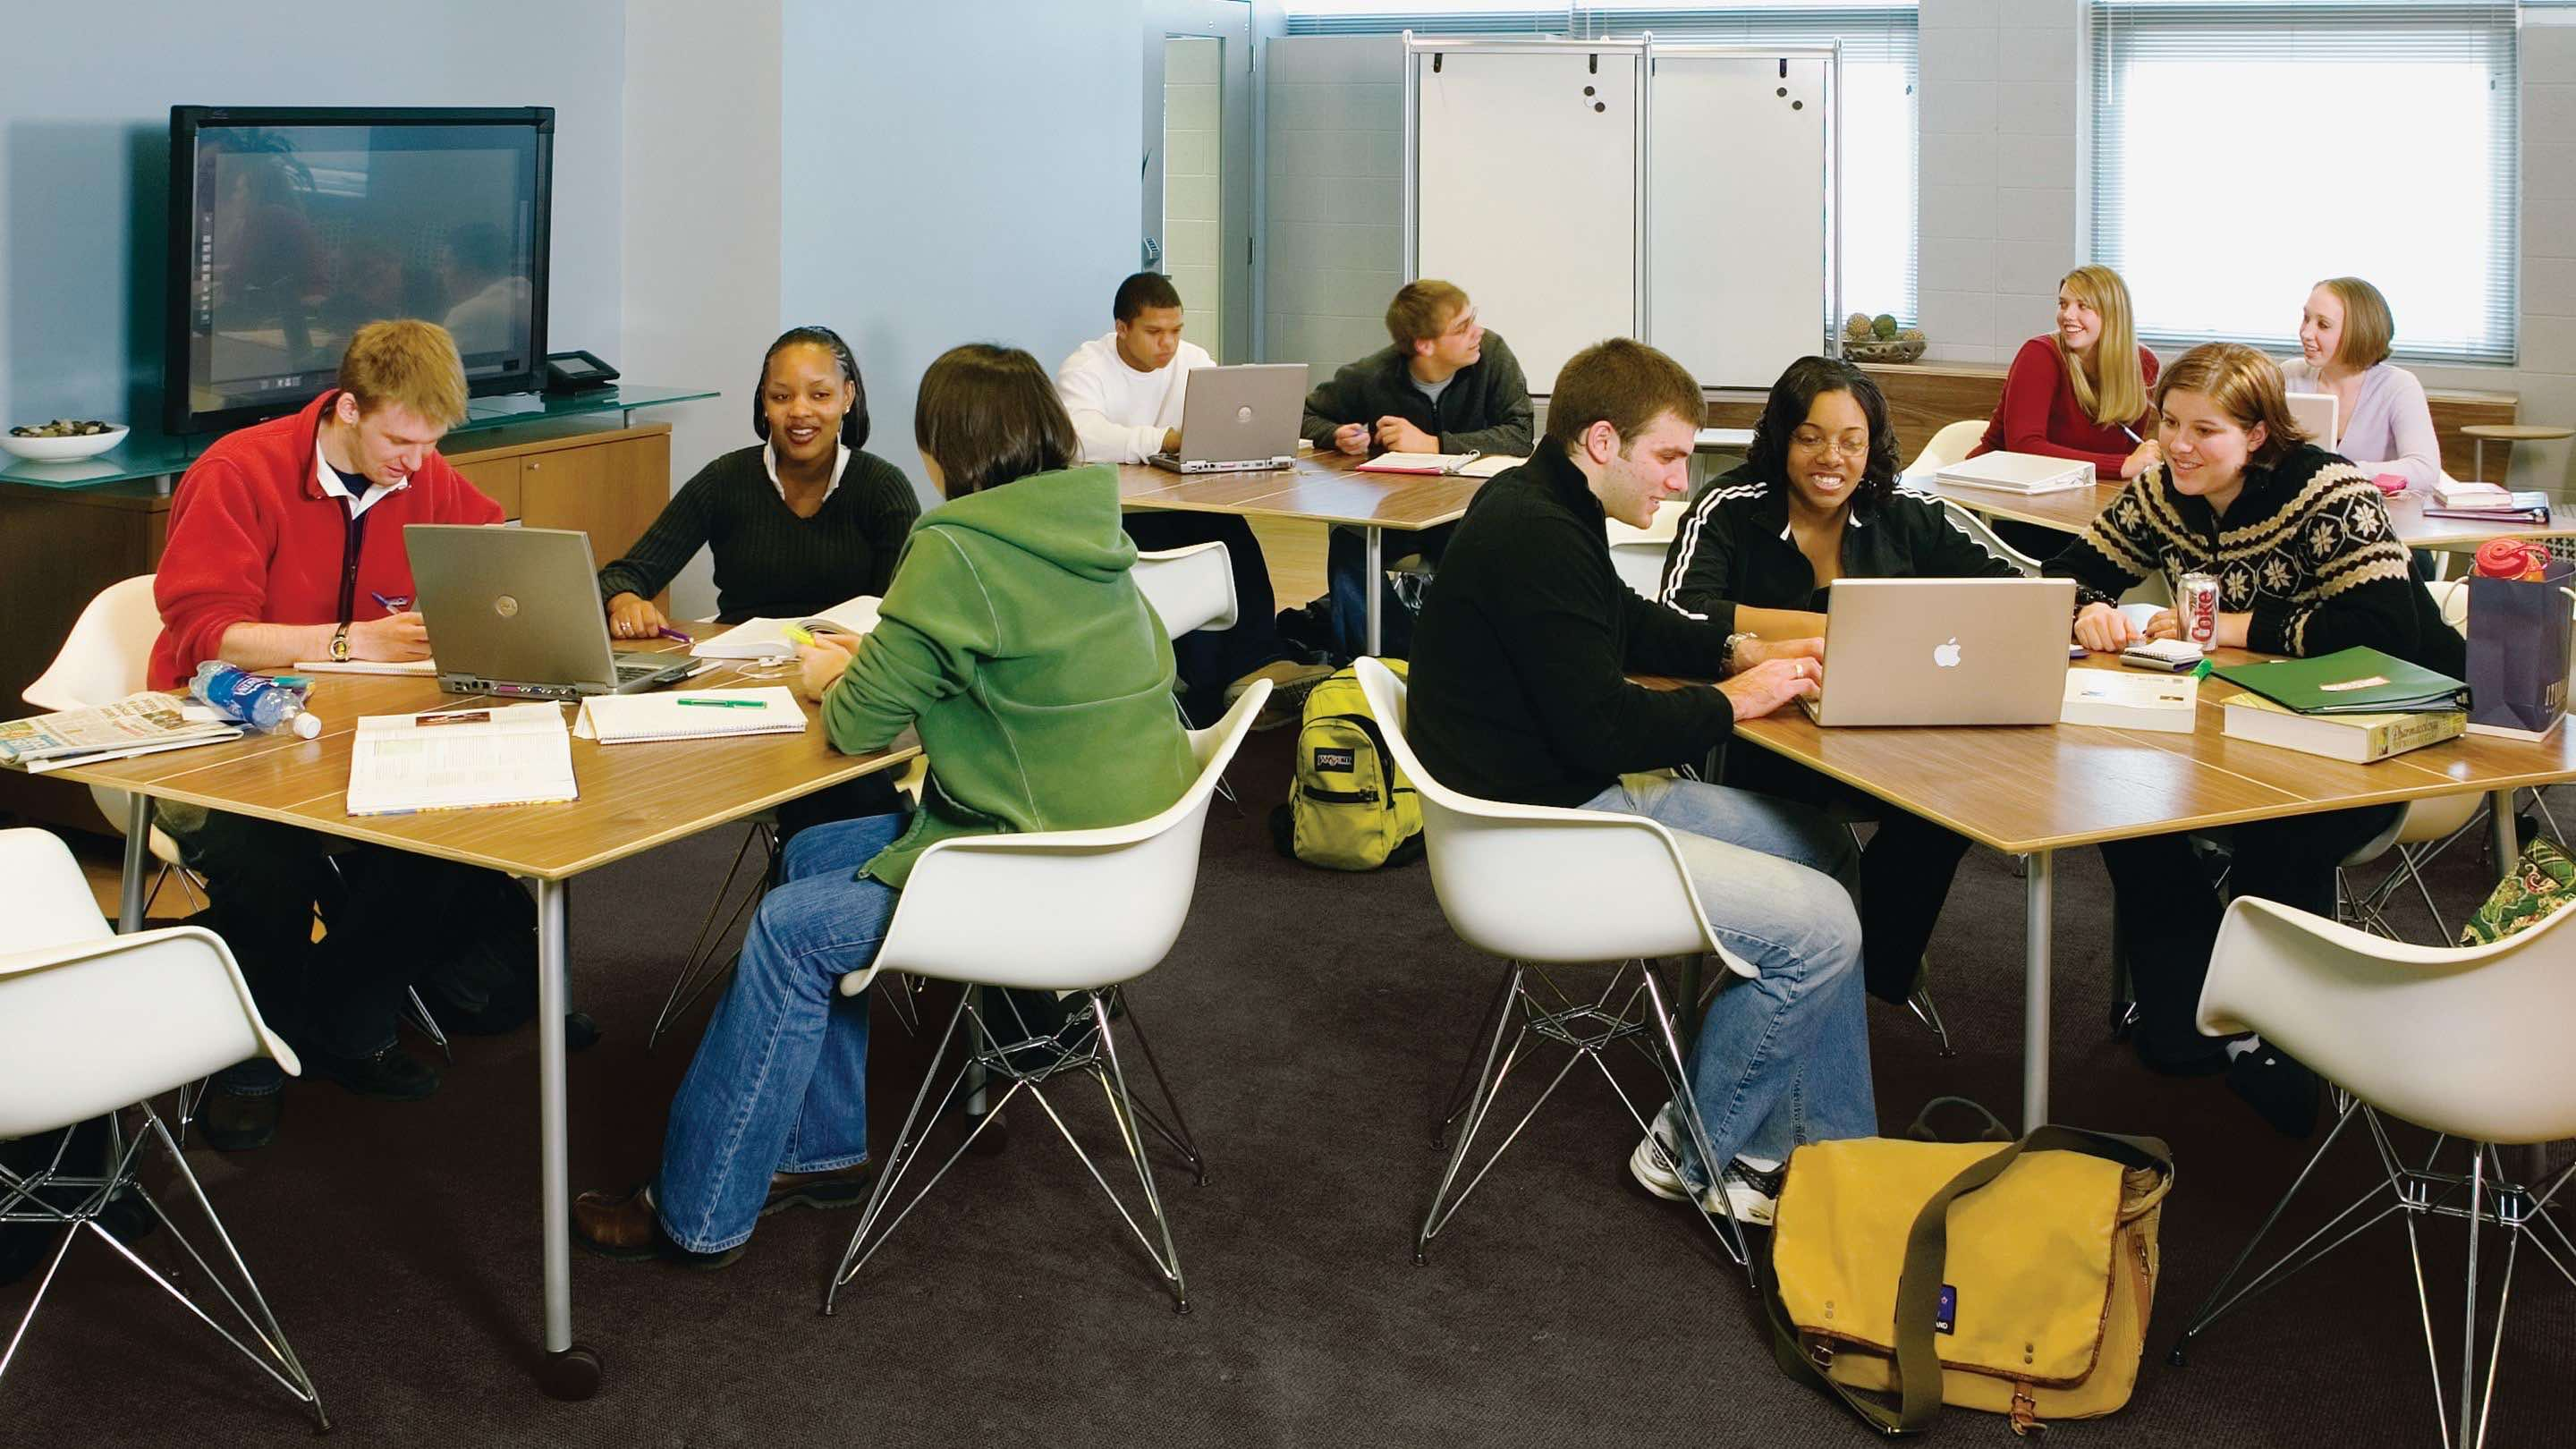 Rethinking the Classroom - Research - Herman Miller